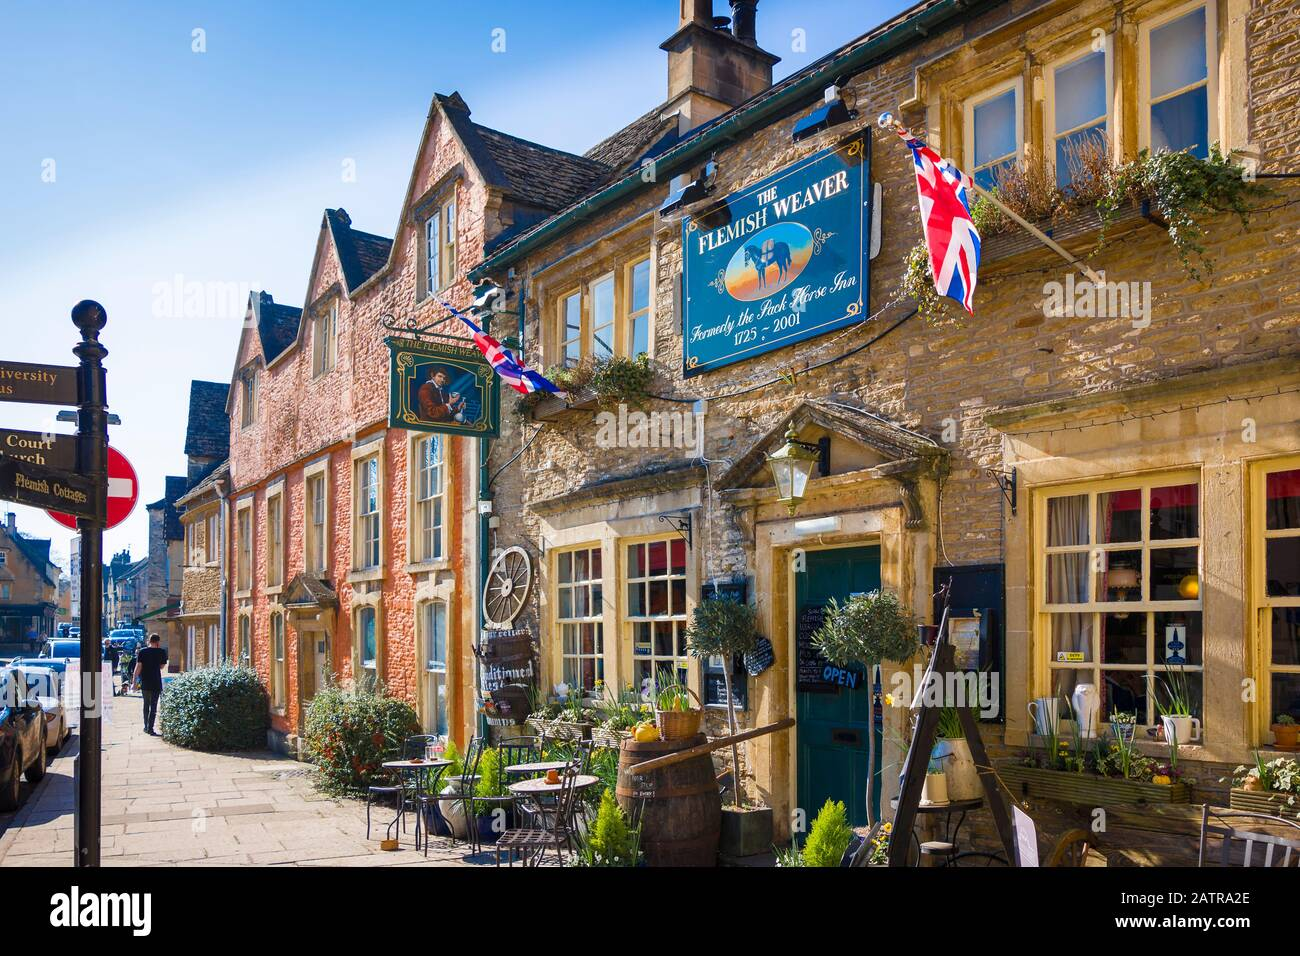 Fine old historic buildings includingThe Flemish Weaver dating from 18th century in Corsham town Wiltshire England UK Stock Photo